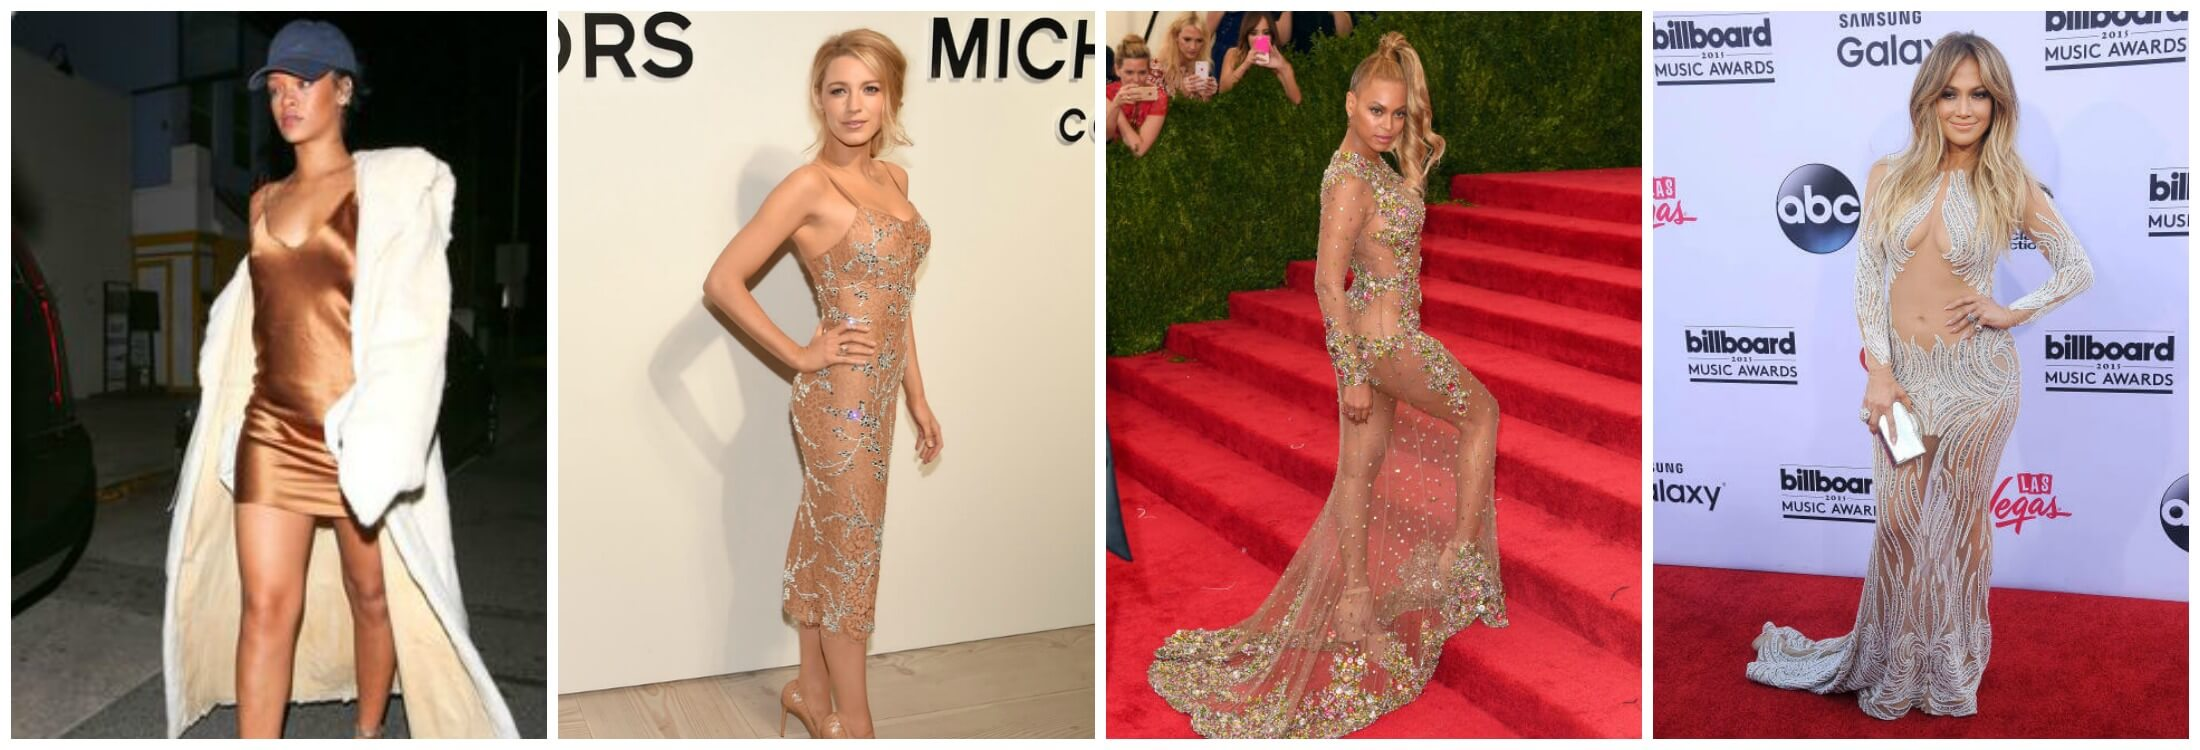 The Classic Naked Dress with Modern Twists & The New Naked Dress. From left: Rihanna, Blake Lively, Beyonce, Jennifer Lopez.